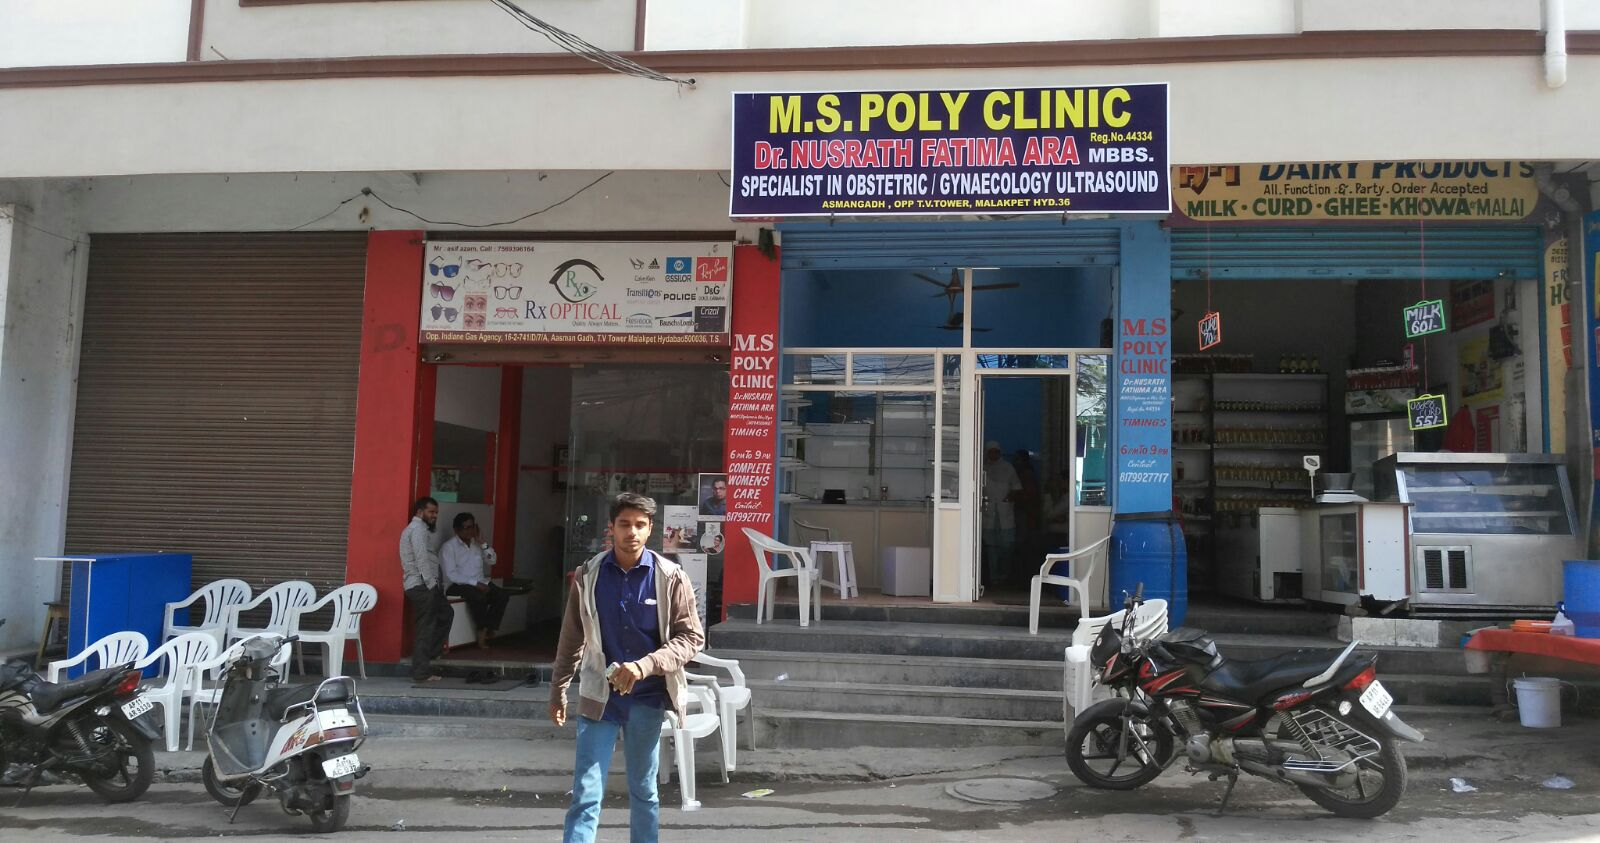 M. S. Poly Clinic